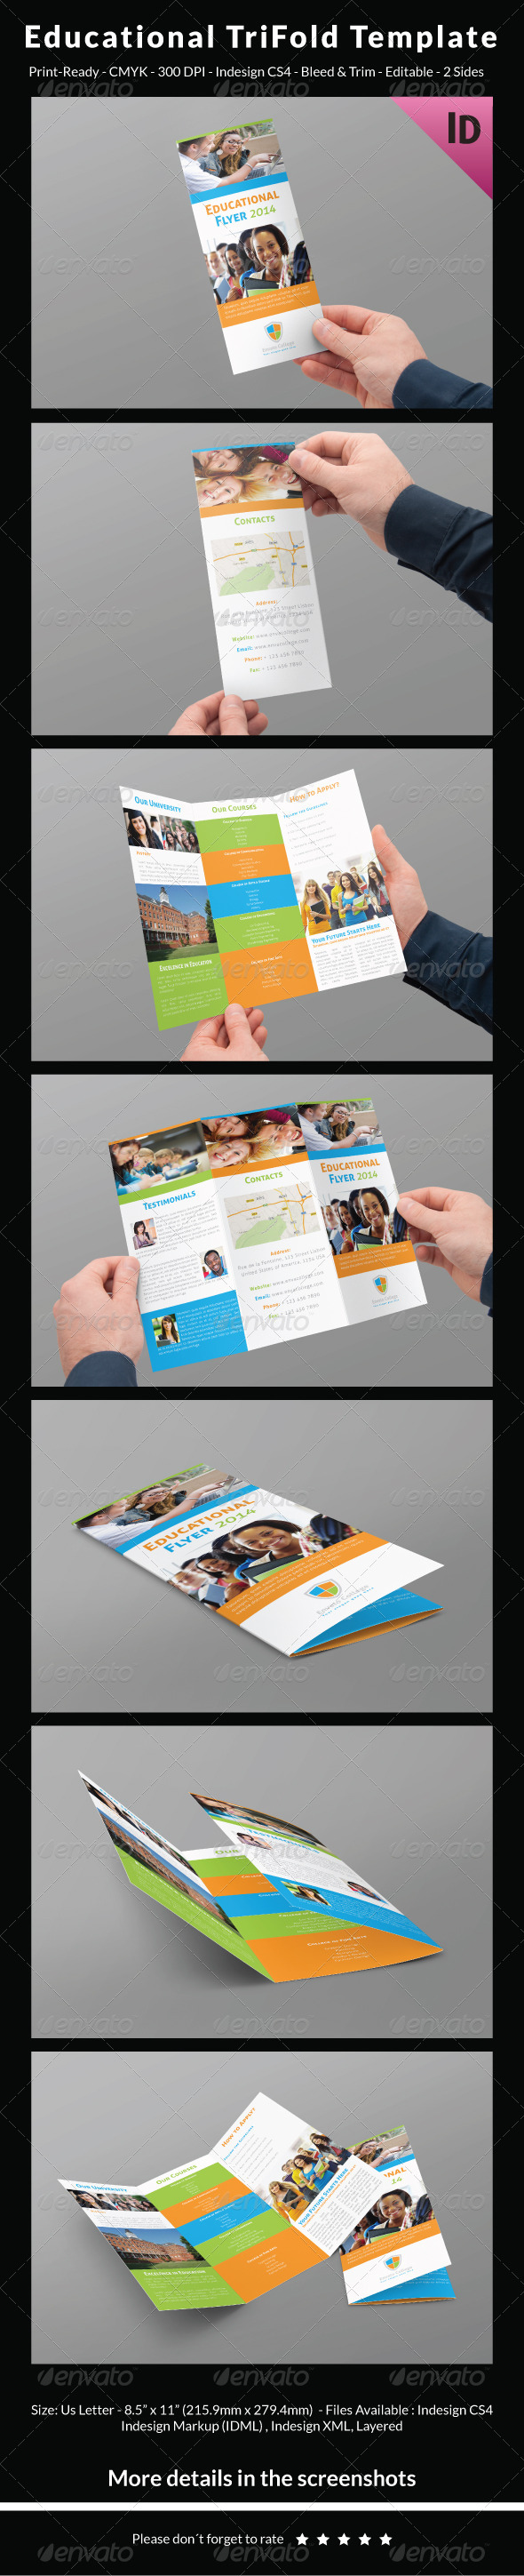 GraphicRiver Educational Trifold Template 7685163